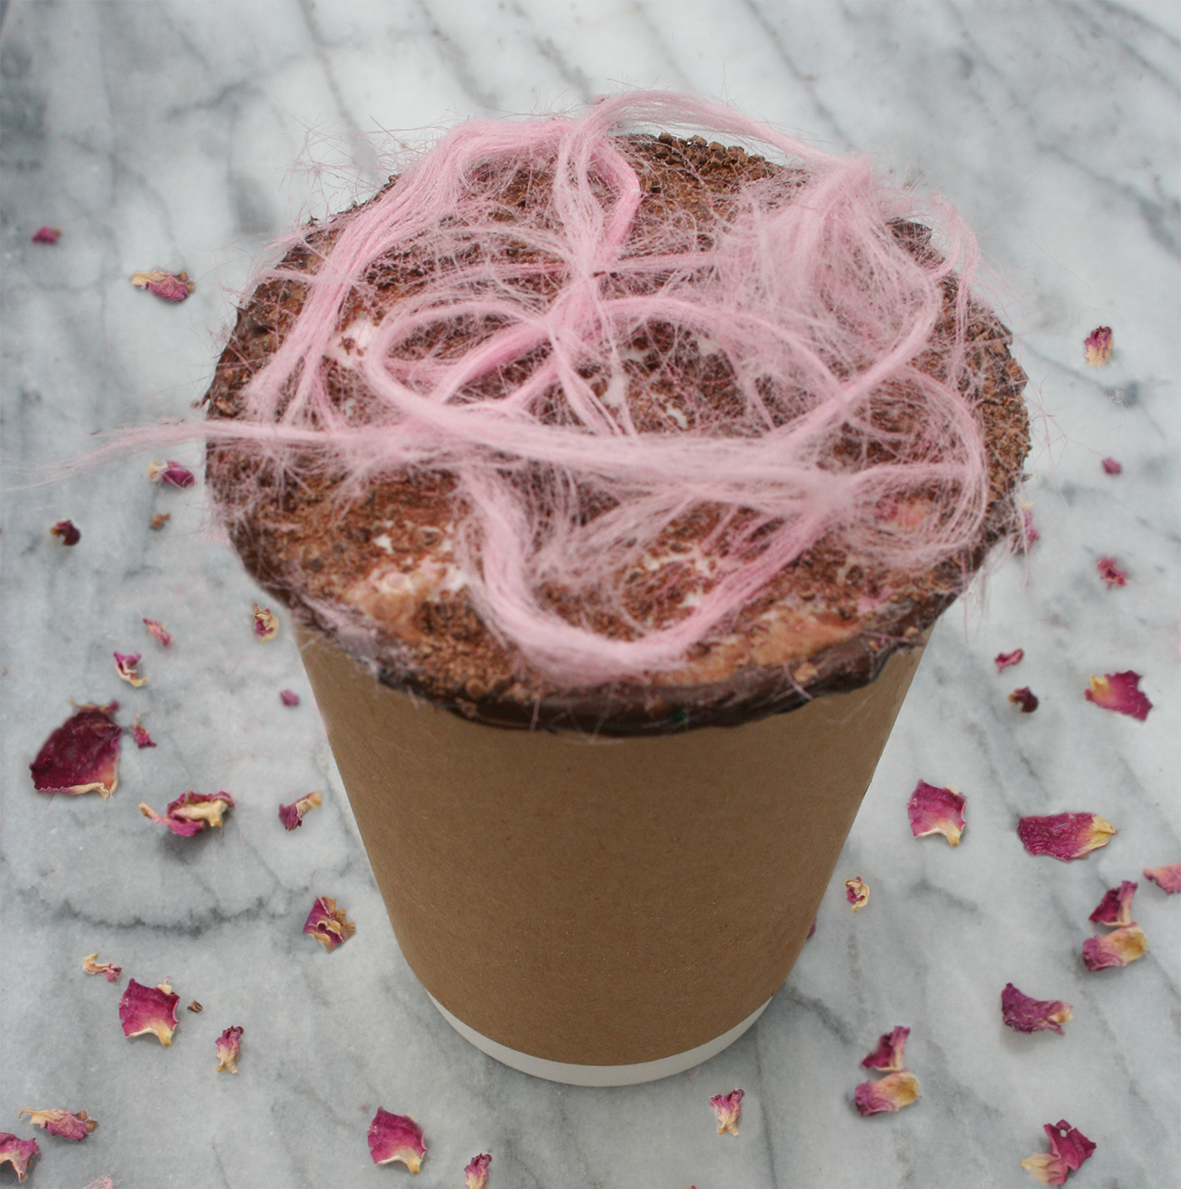 rose hot chocolate in a take away cup